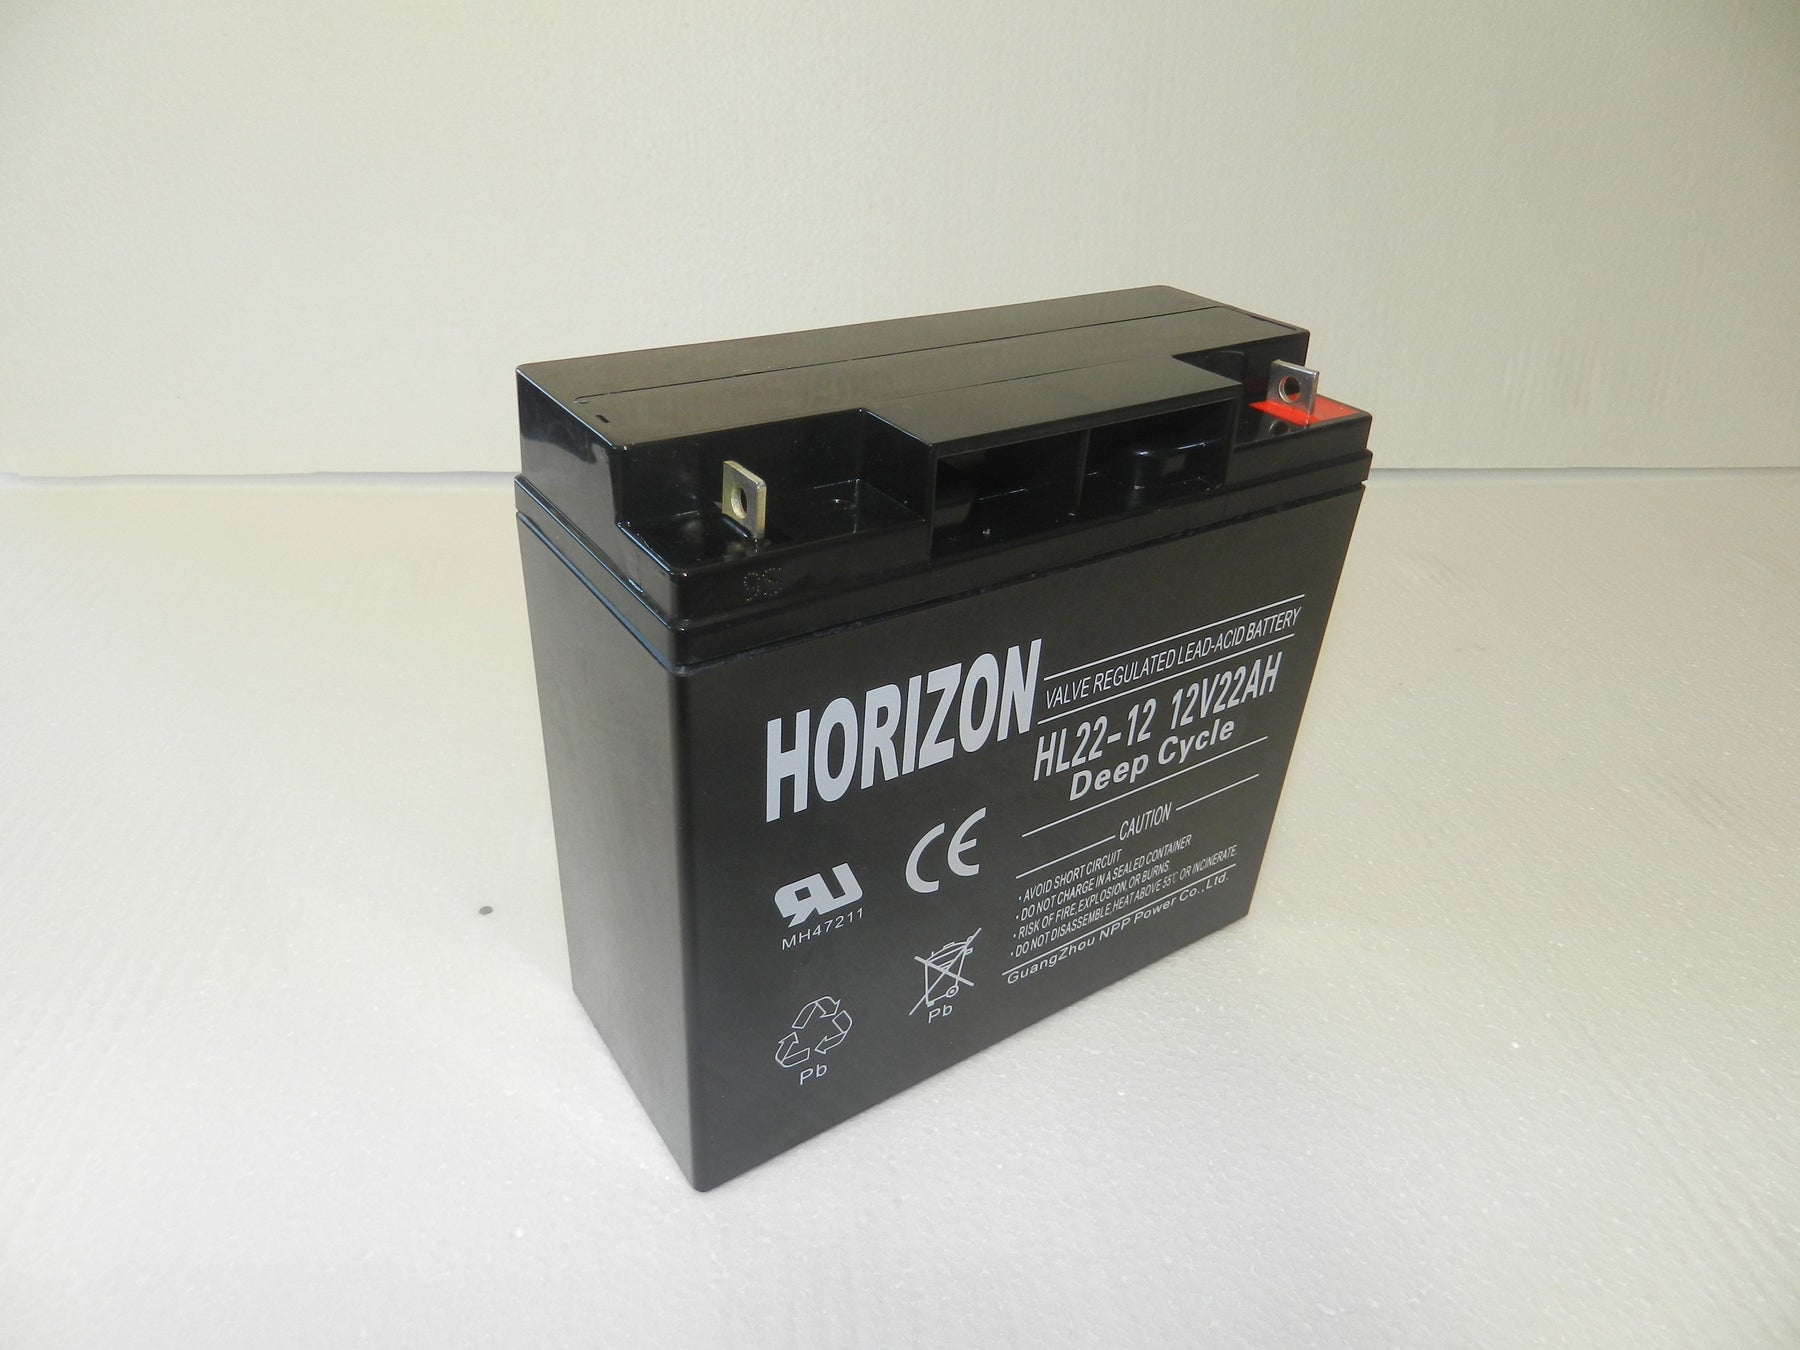 12v 22ah sla battery from Batteryworld.ie